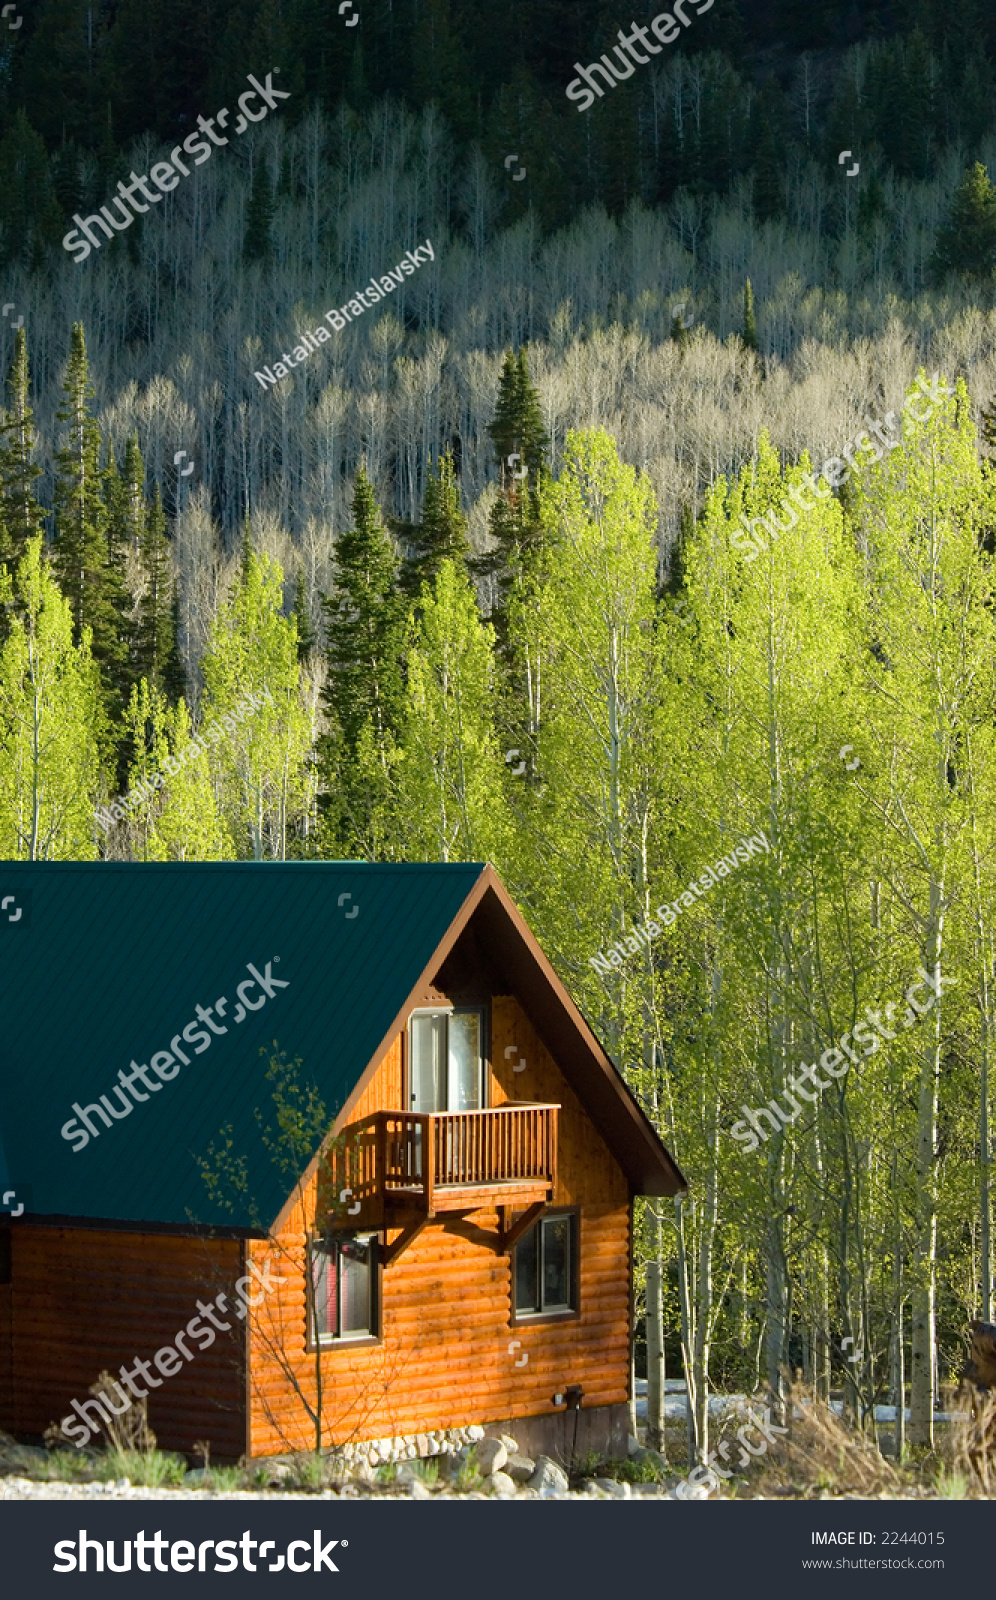 Cozy Wooden House Mountains Stock Photo Shutterstock - Cozy wooden house